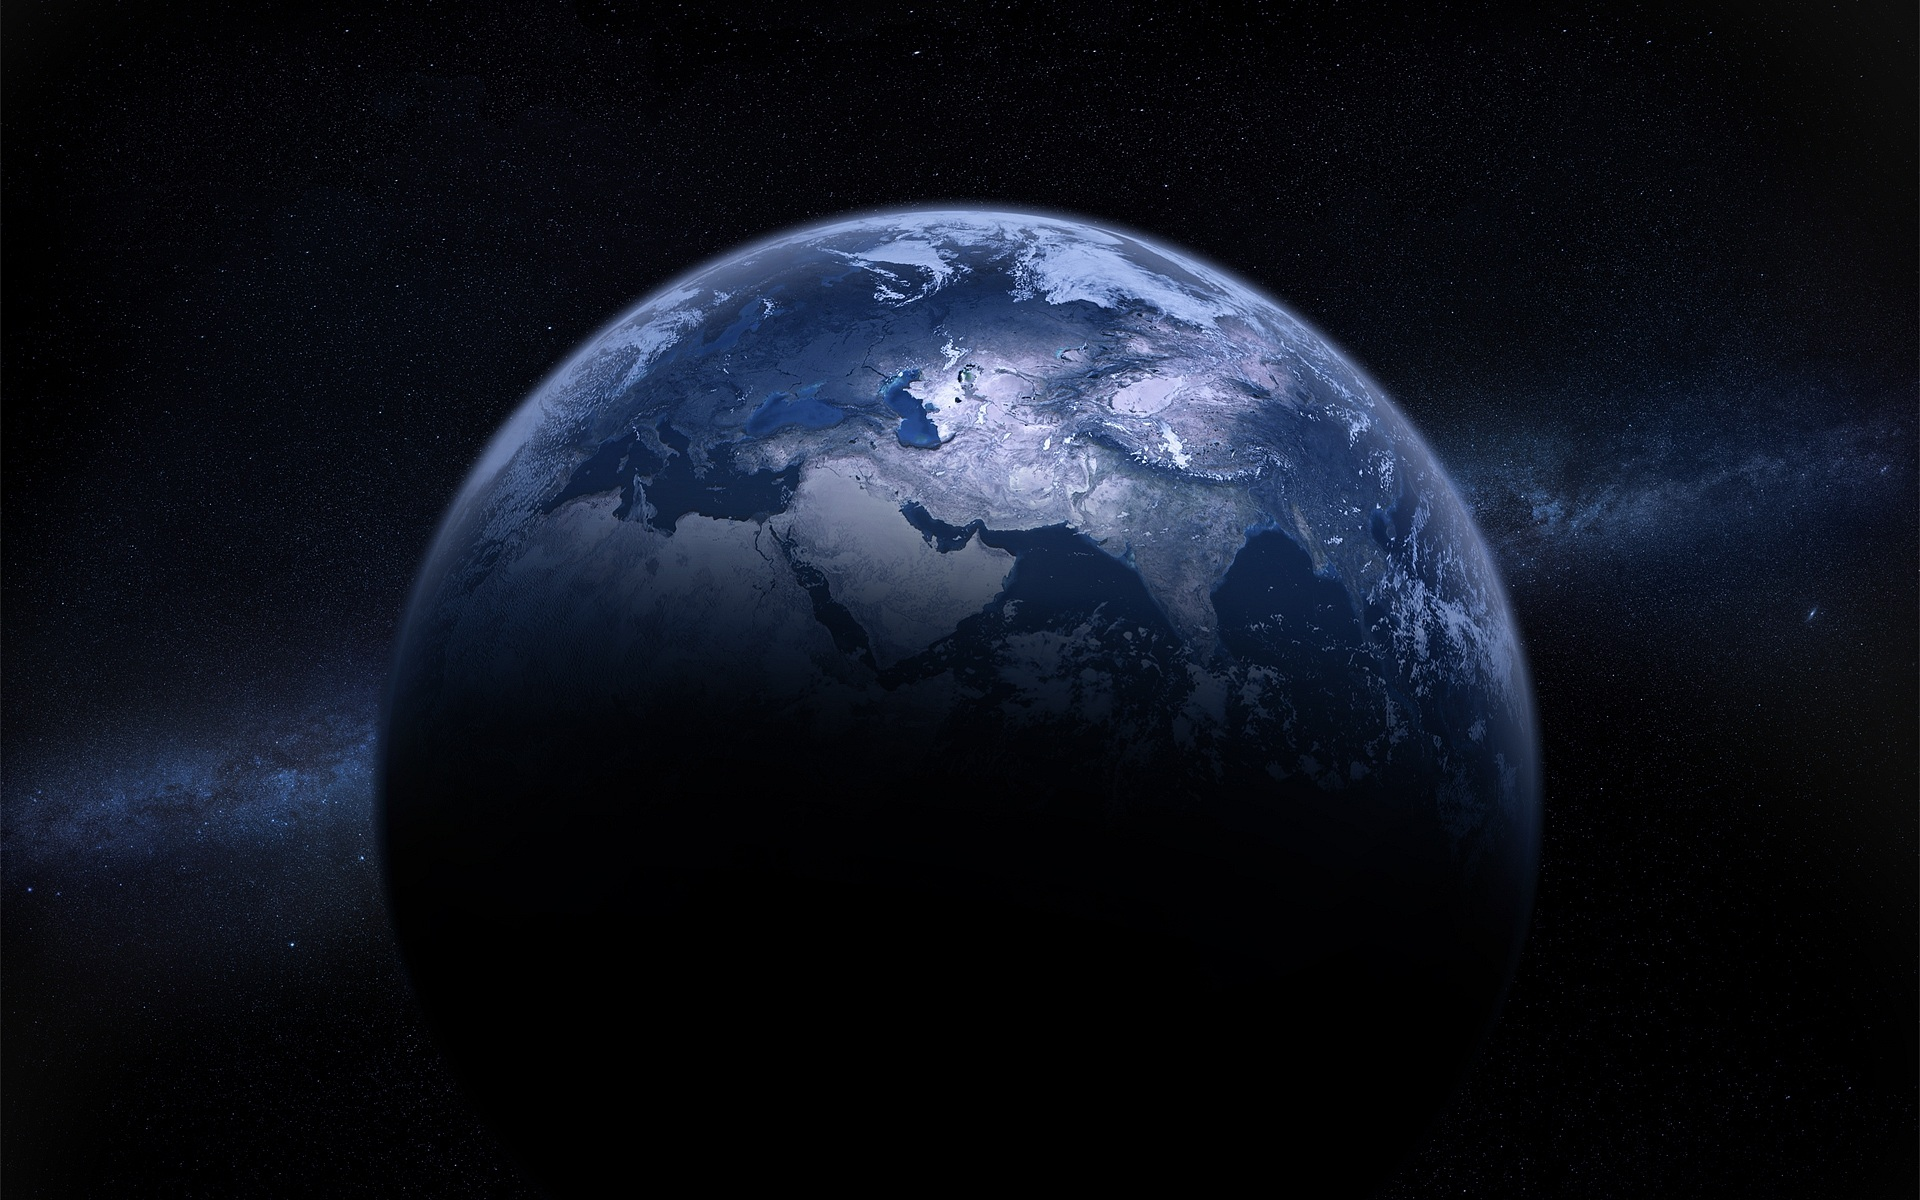 Earth From Space Wallpaper 1920x1200 Earth, From Space